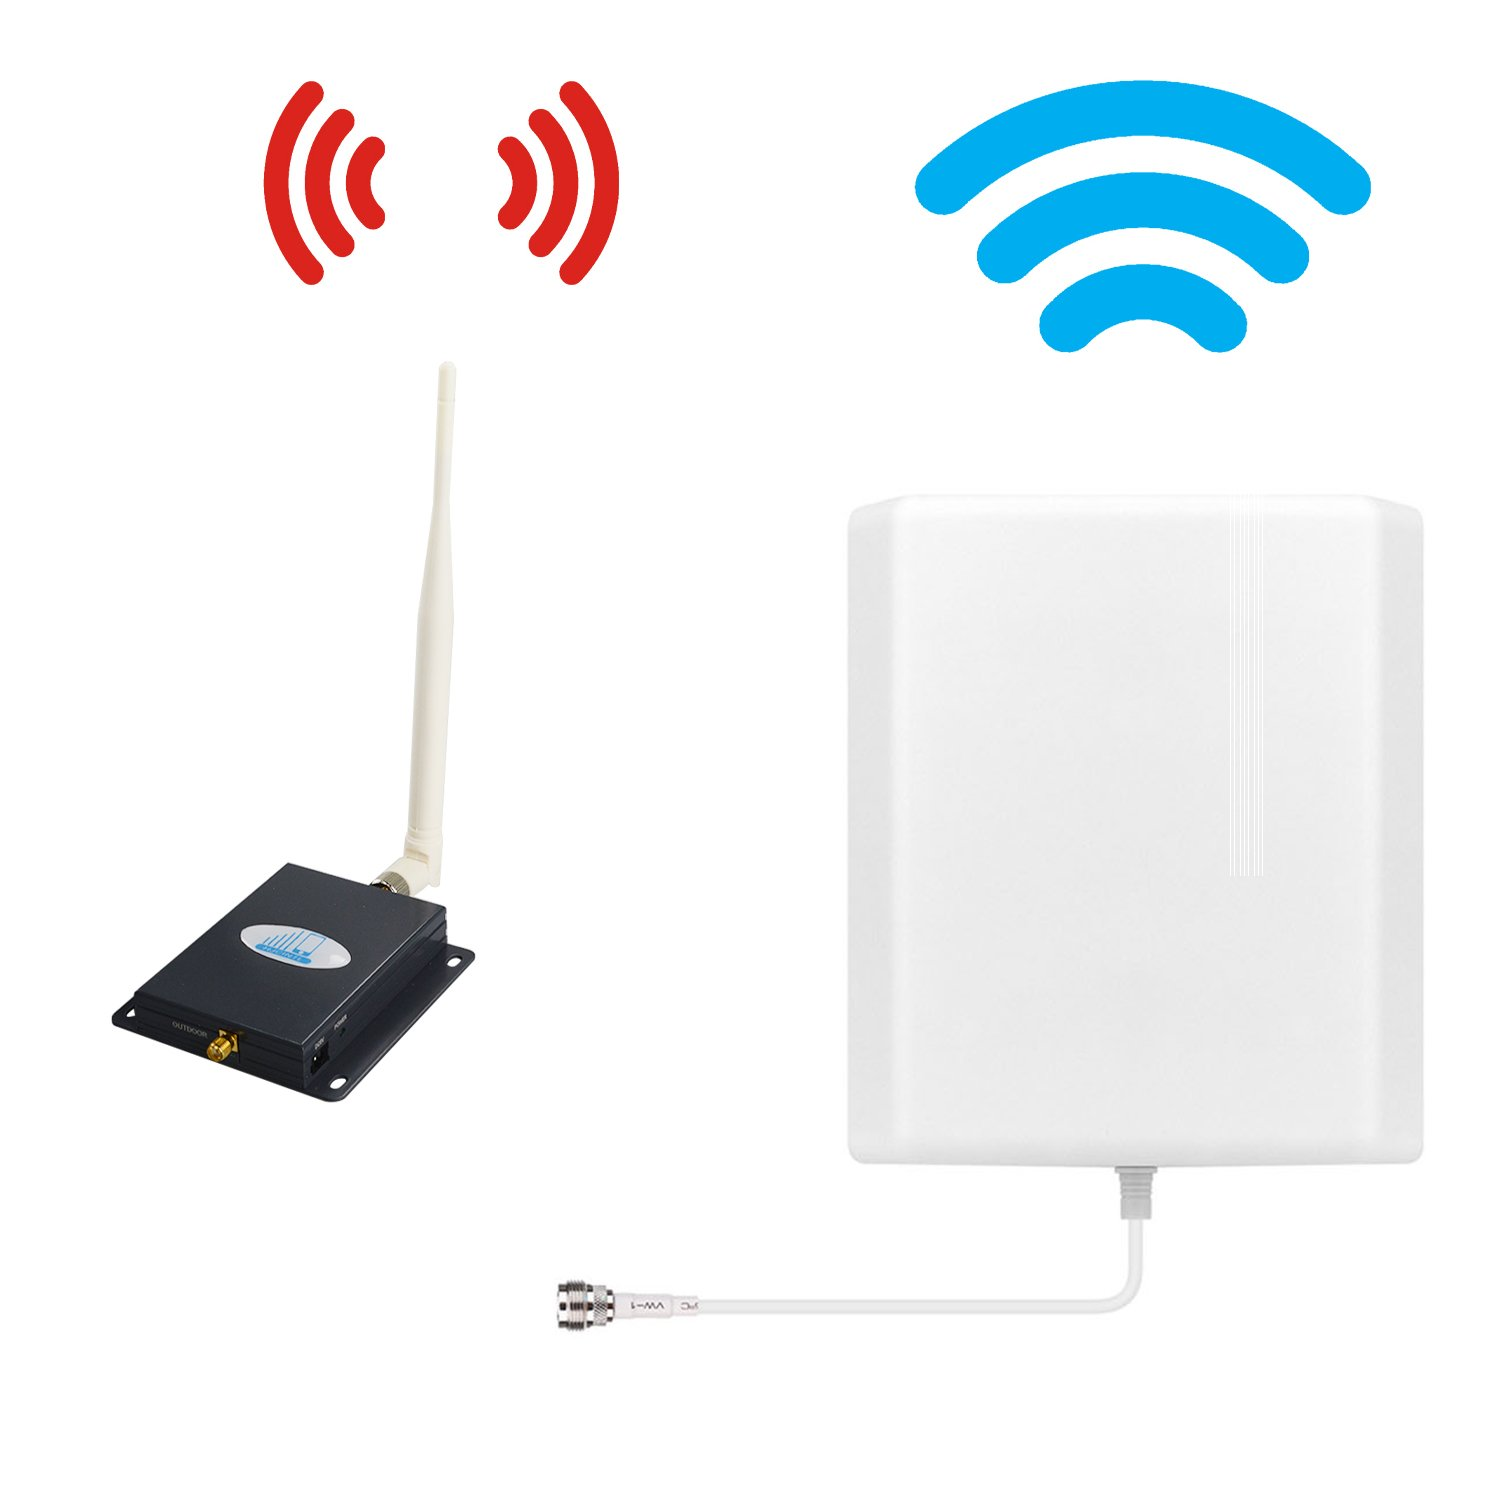 Verizon Cell Phone Signal Booster 4G Lte Cell Booster HJCINTL 700MHz Band 13 Home Mobile Phone Signal Repeater Amplifier Kit Cover- 1500sq ft